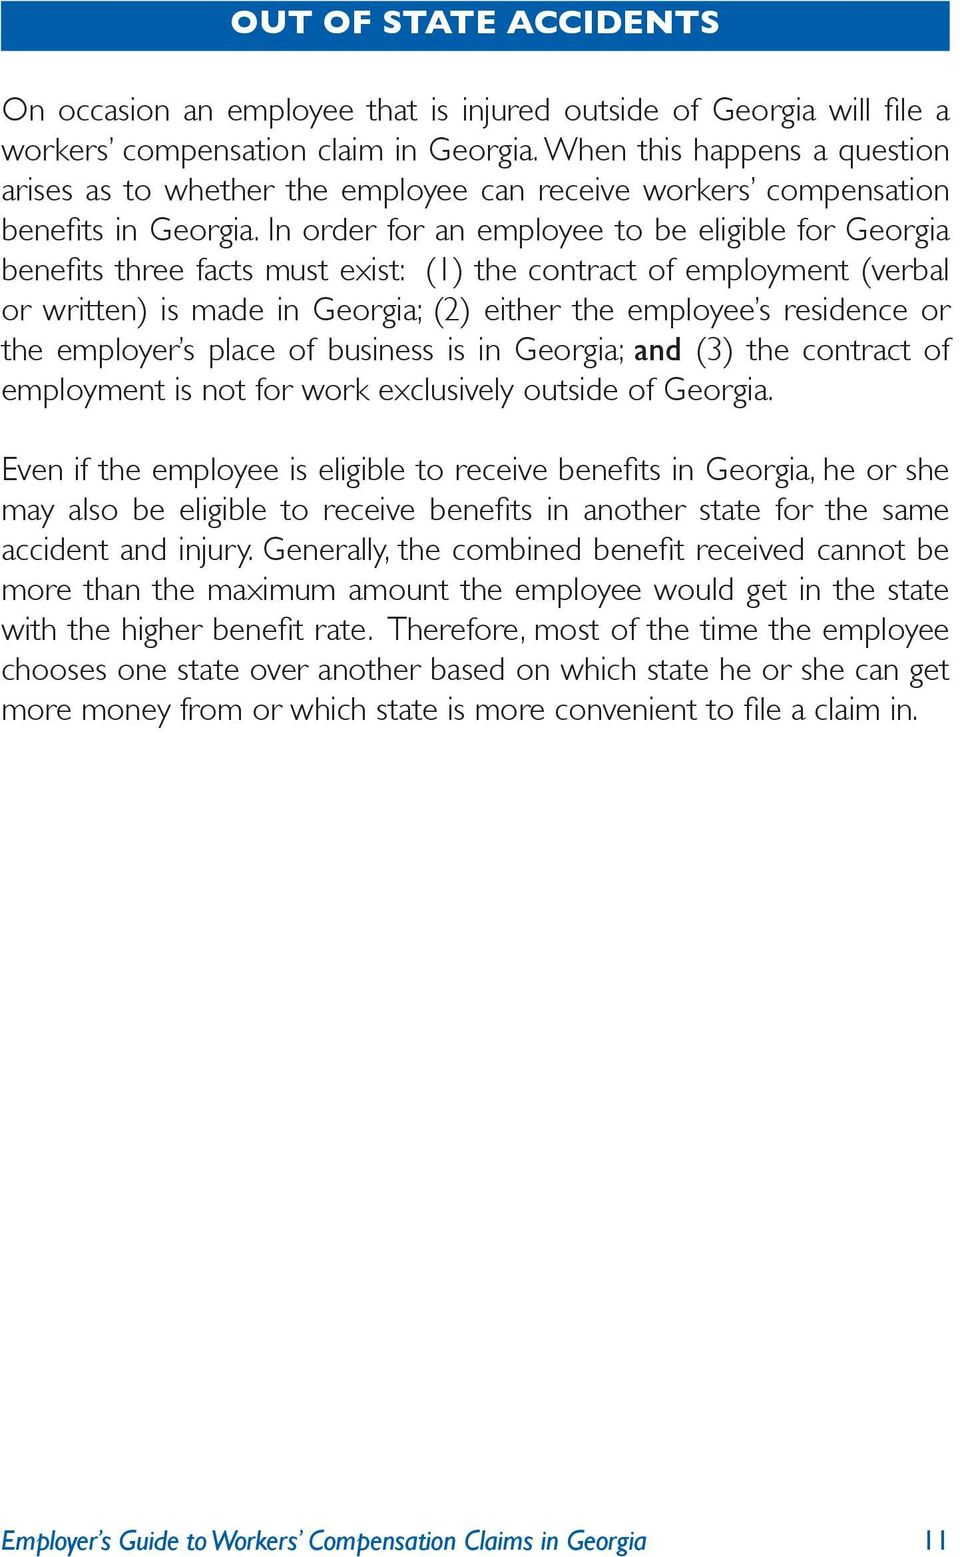 In order for an employee to be eligible for Georgia benefits three facts must exist: (1) the contract of employment (verbal or written) is made in Georgia; (2) either the employee s residence or the